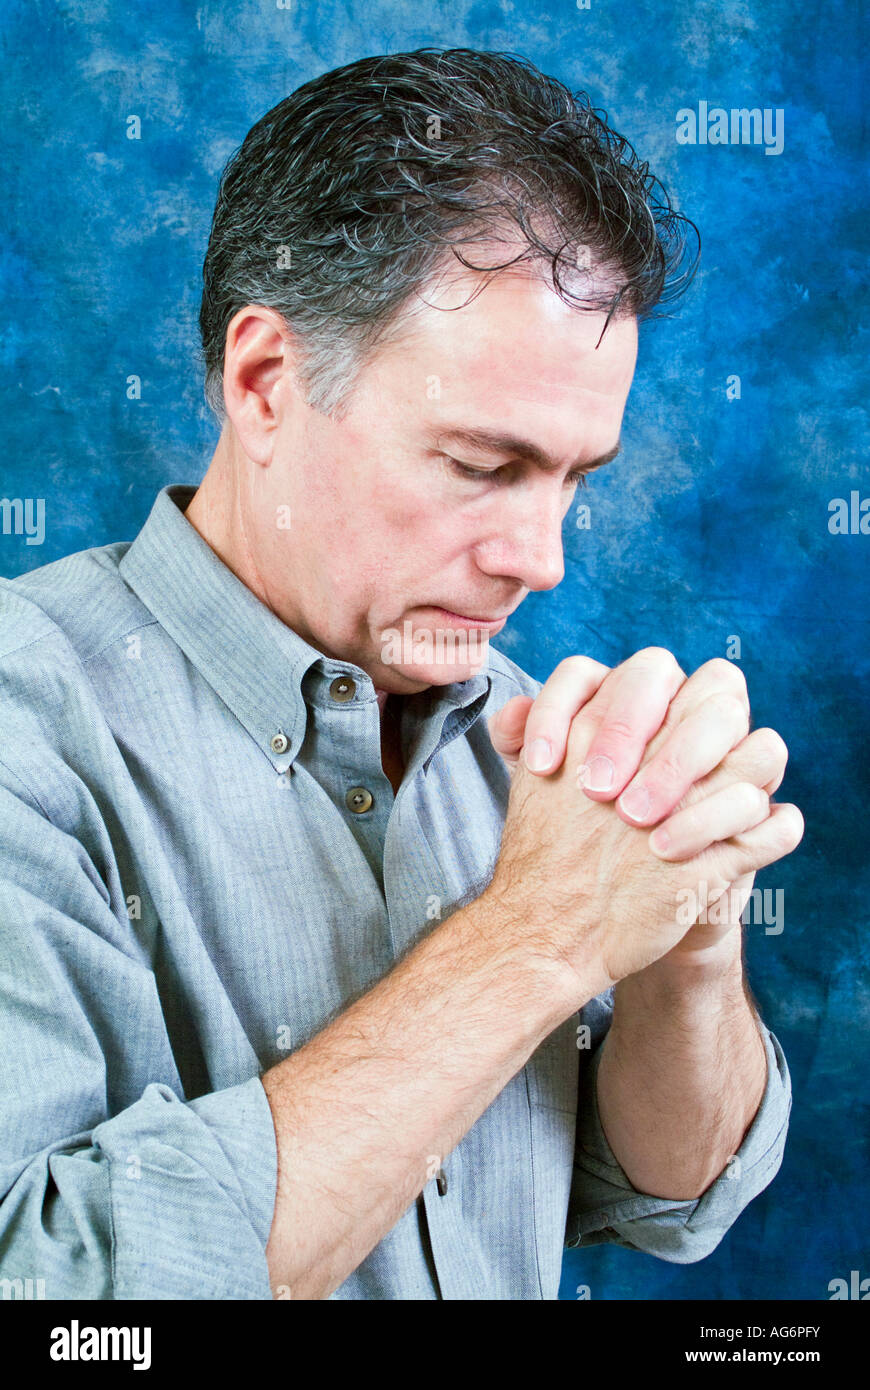 A man in a posture of prayer with head bowed and hands together - Stock Image